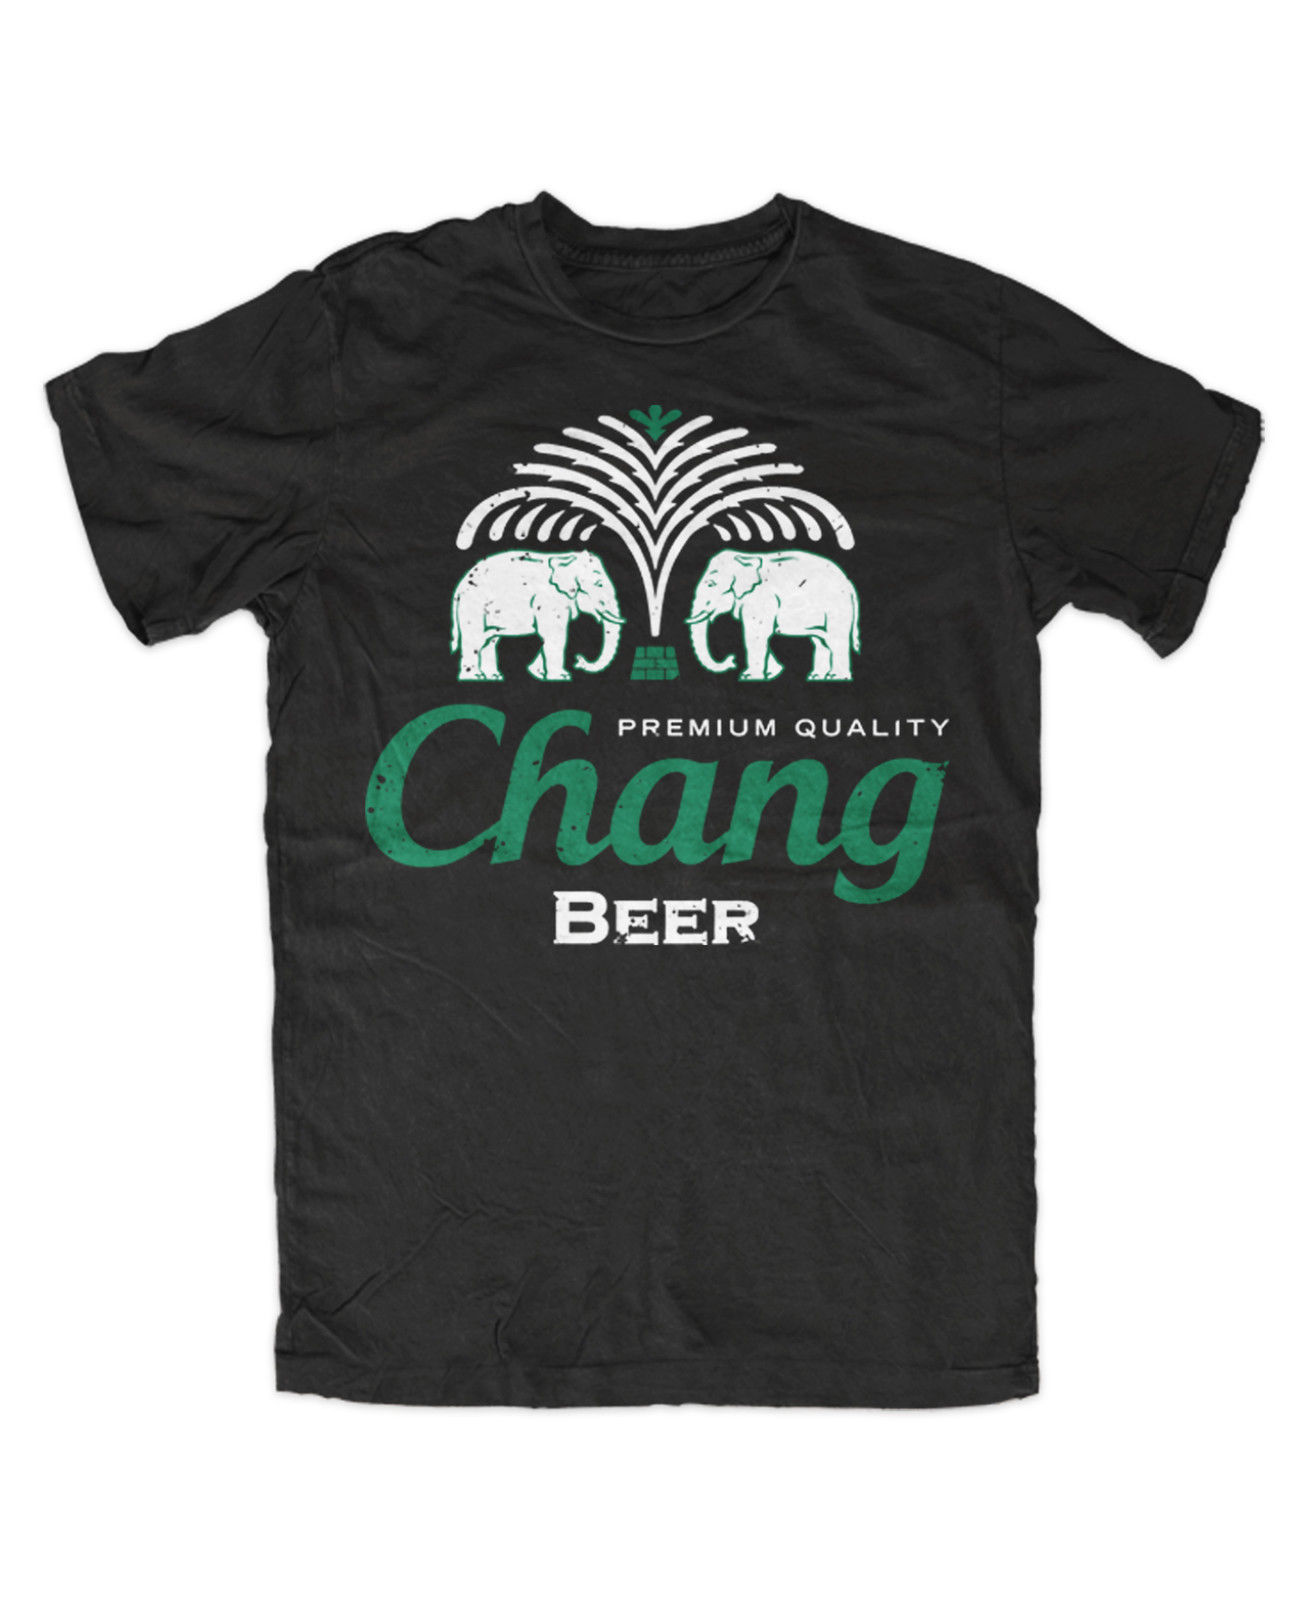 Chang Beer Premium T-Shirt Thailand,Elefant,Bangkok,Logo,Hangover,Fun,Kult, Men 2018 Brand Clothing Tees Casual Top Tee